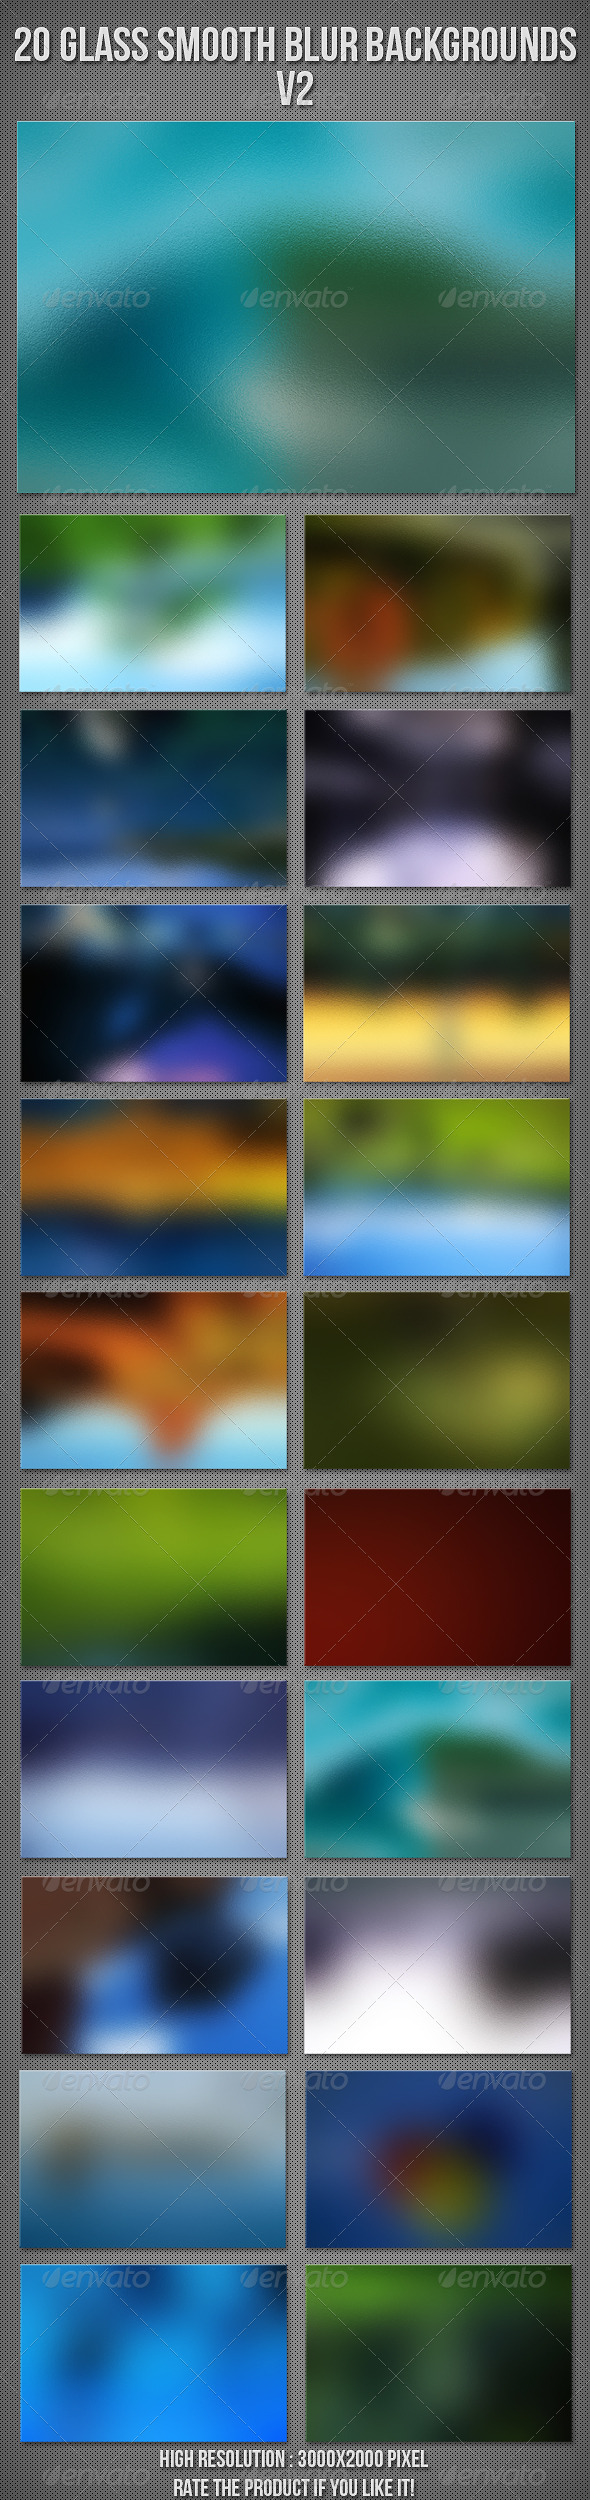 20 Glass Blur Backgrounds V2 - Backgrounds Graphics